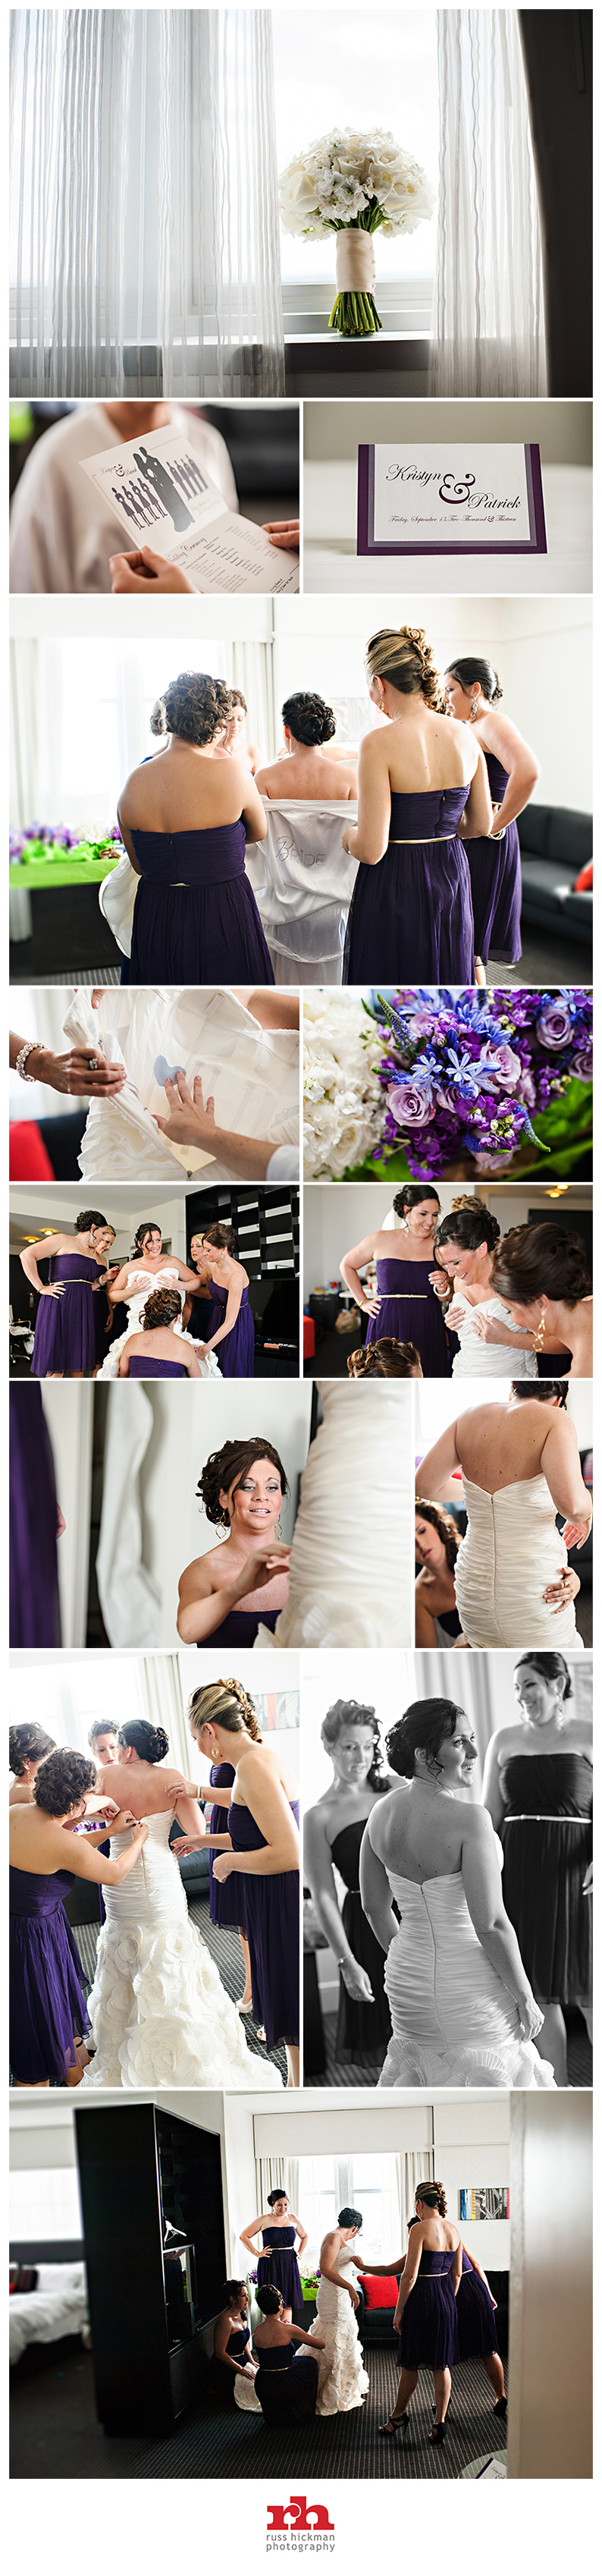 Philadelphia Wedding Photographer KPW003